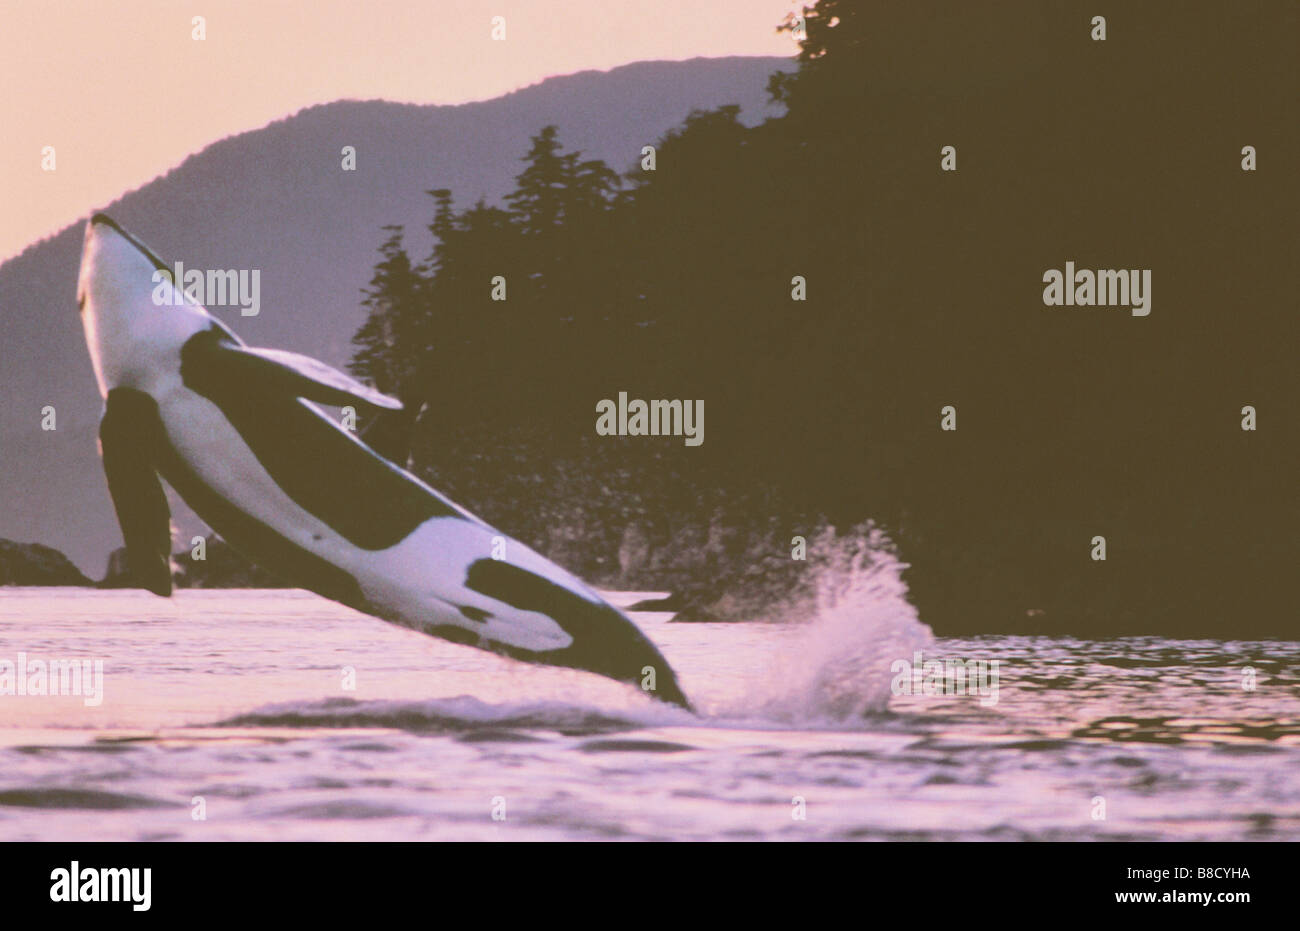 FV2255, Keith Douglas; Breaching Killer Whale (Orca), Prince Rupert BC - Stock Image